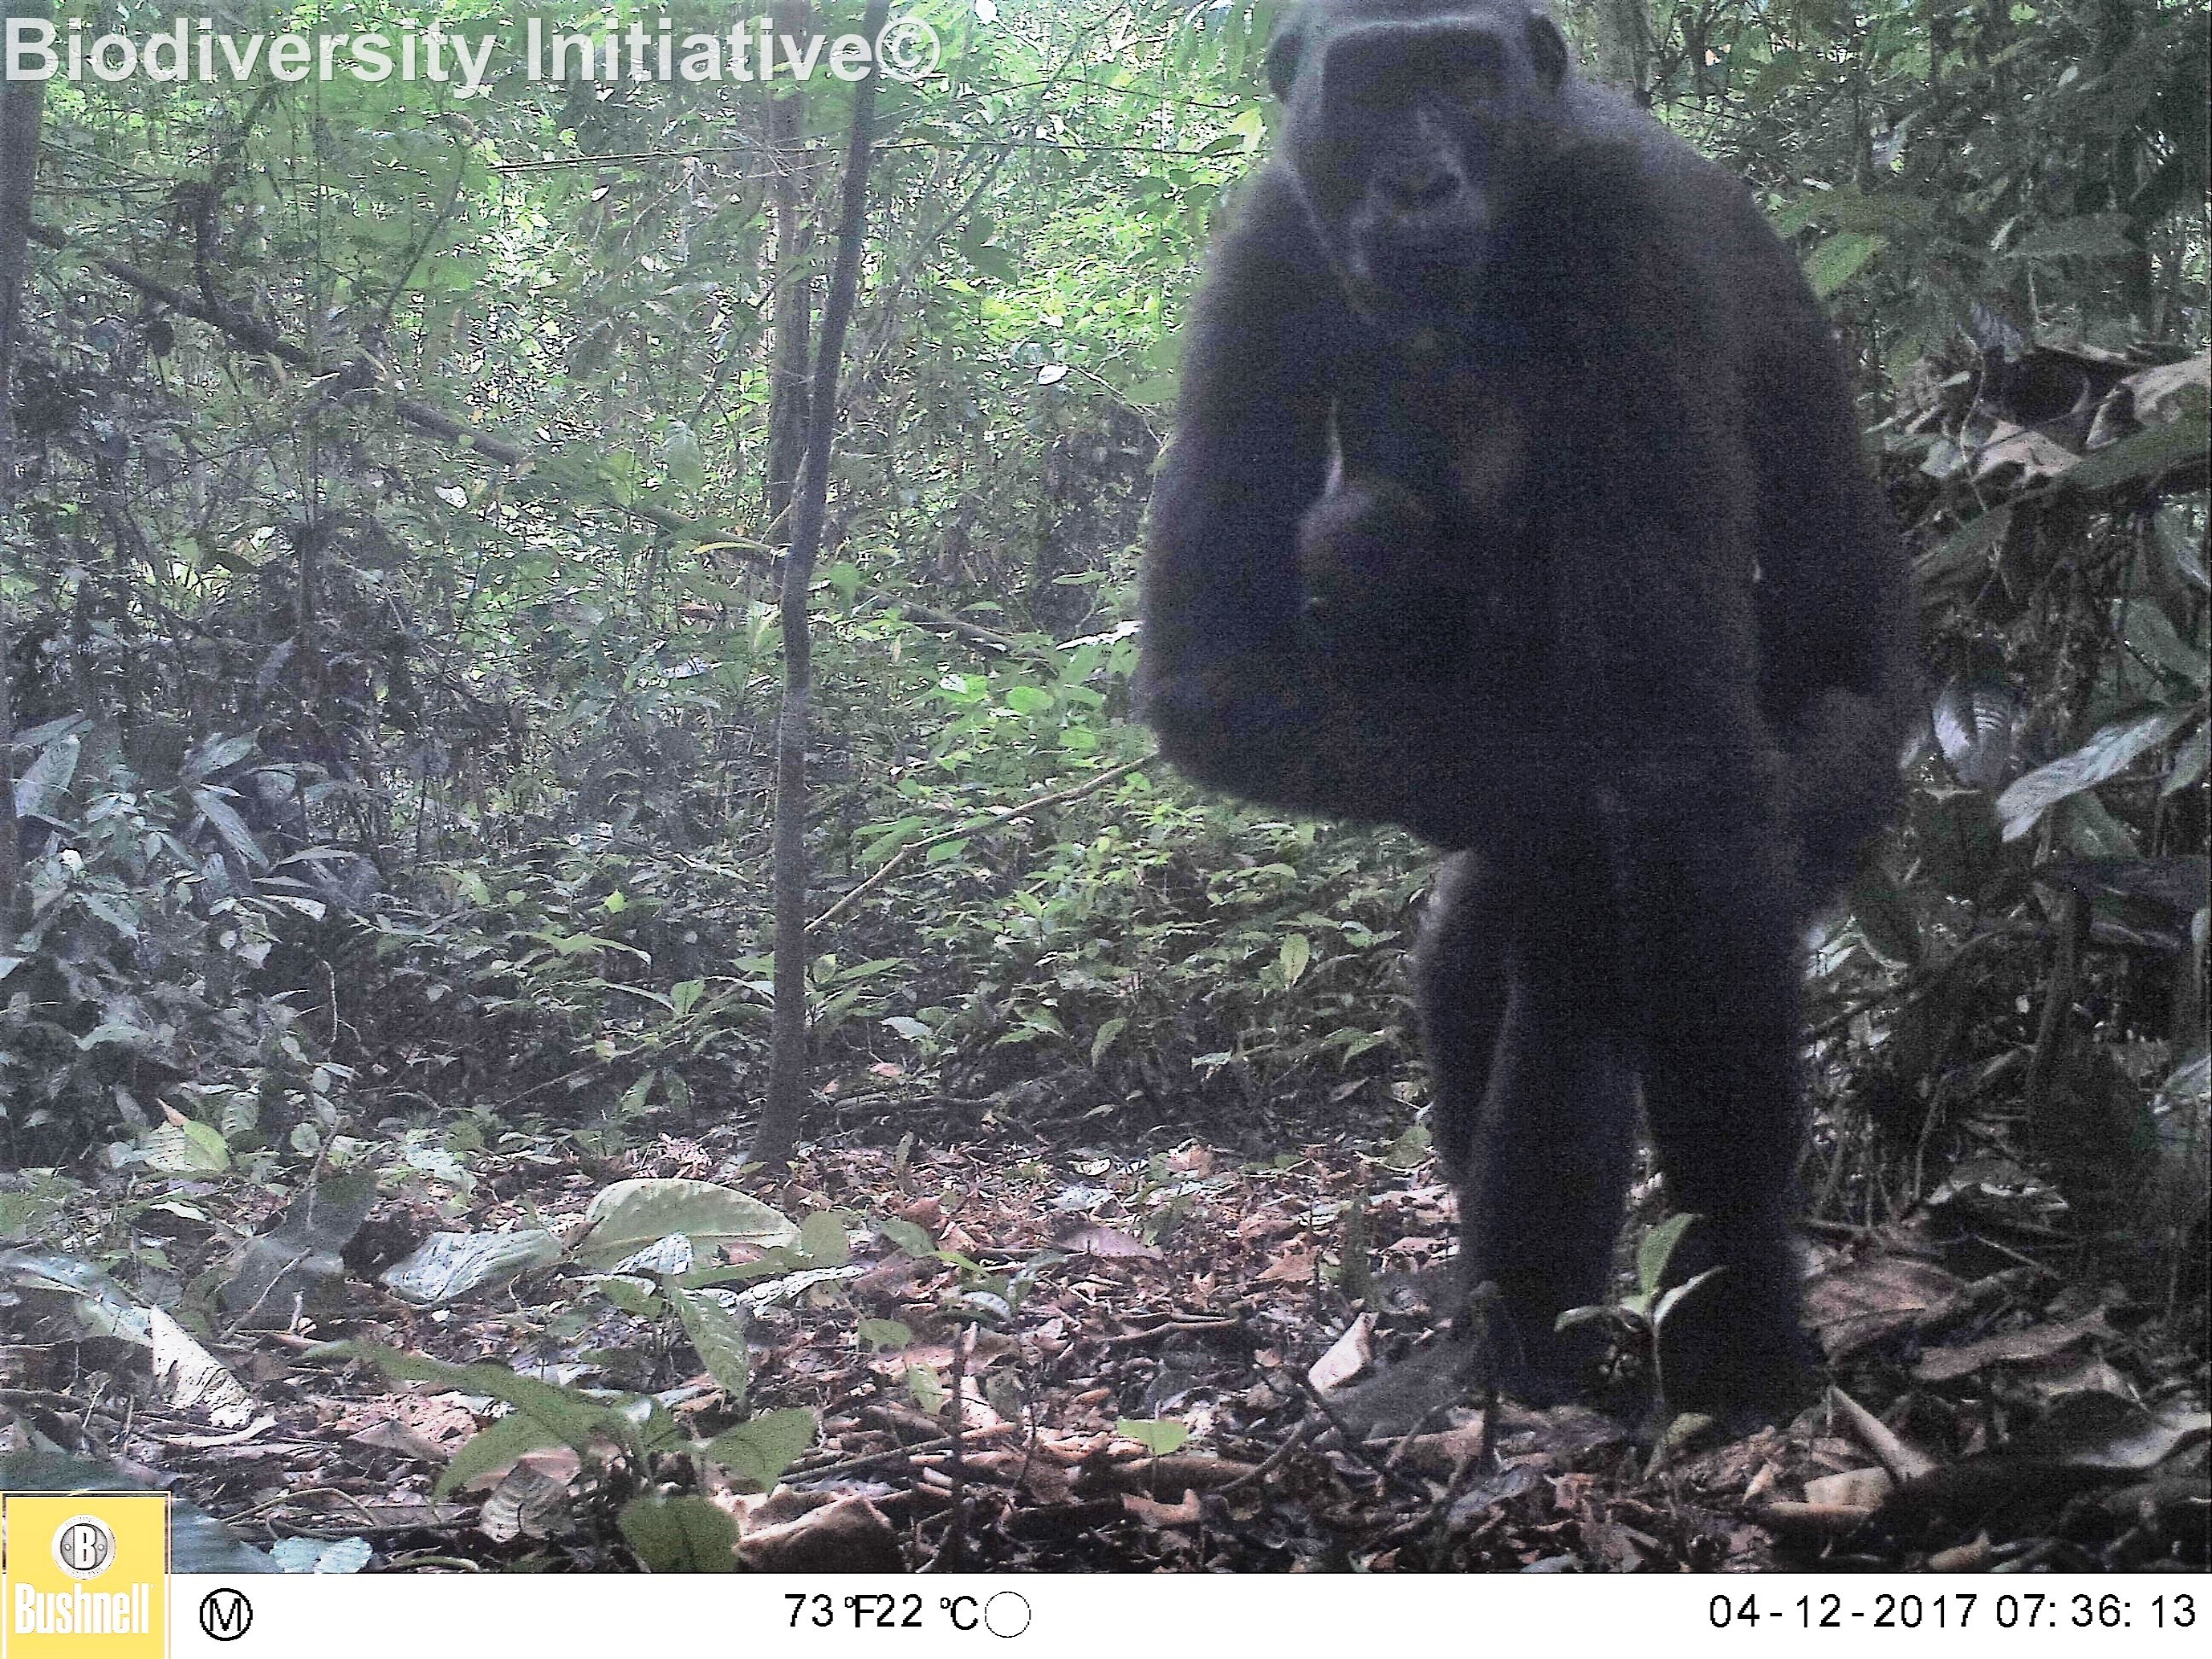 Great apes camera trap image